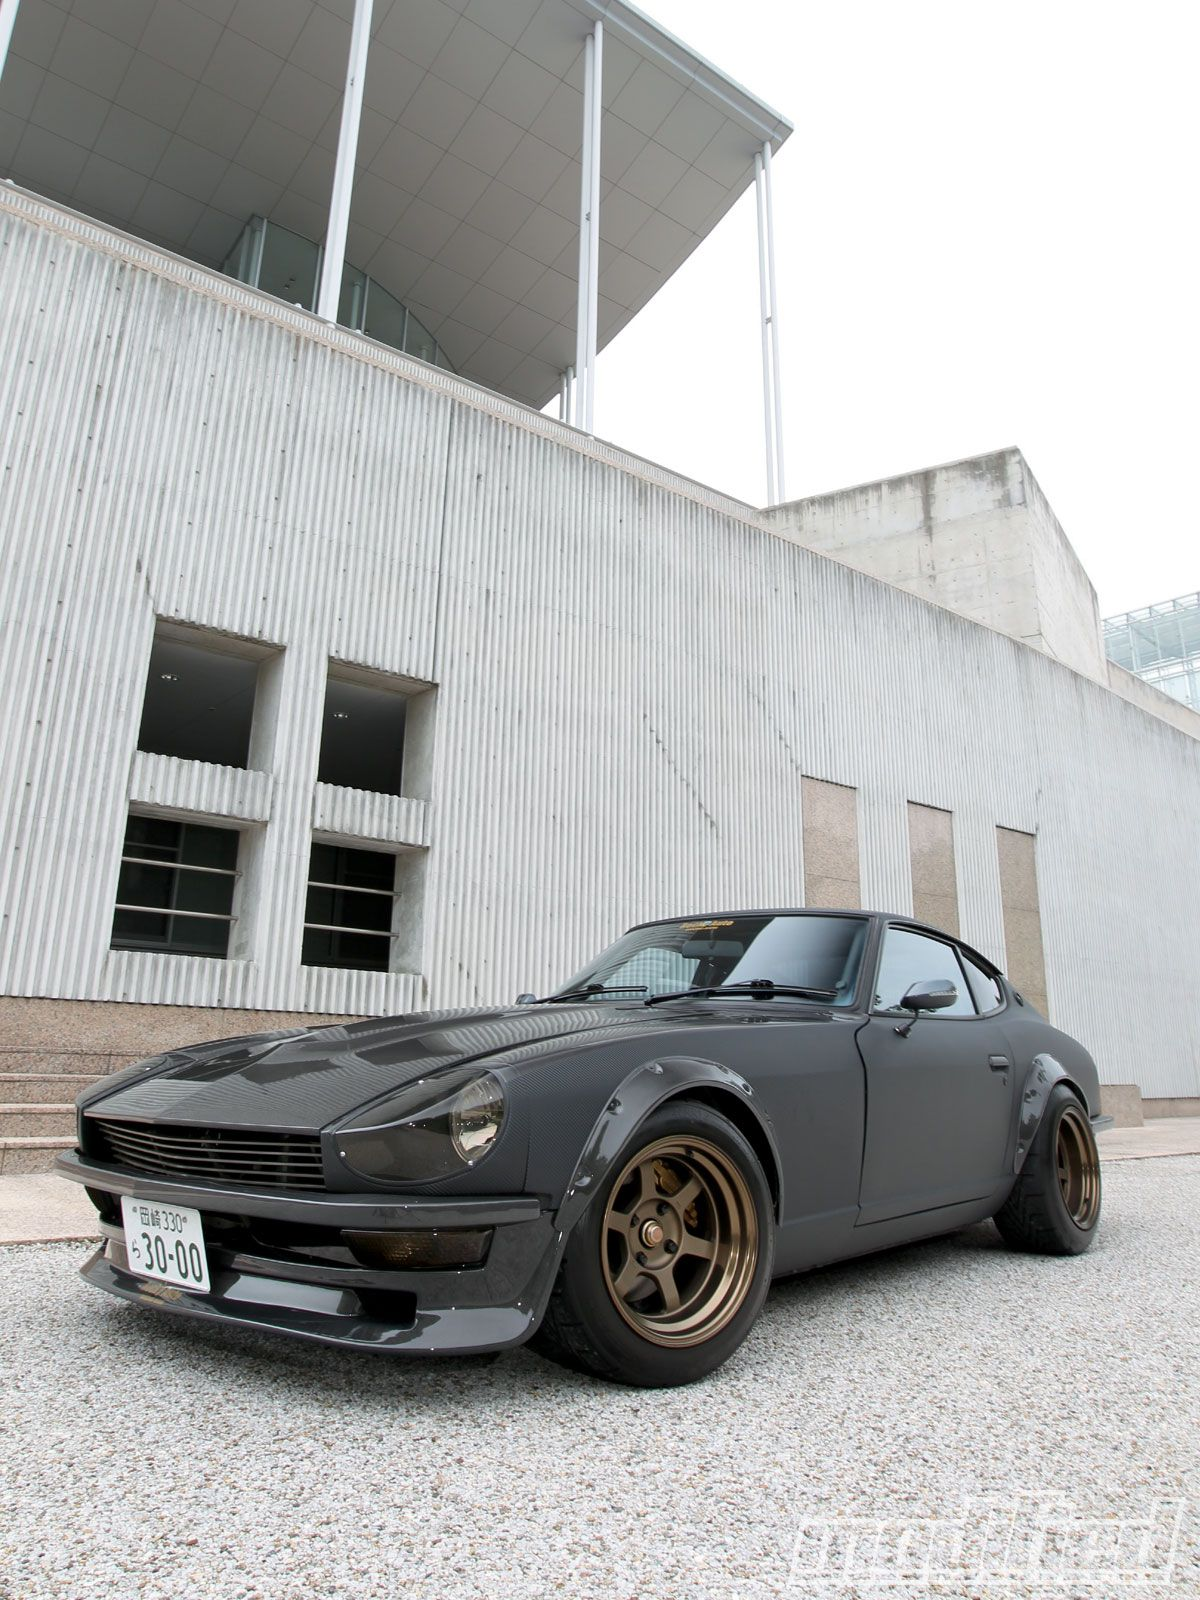 modp_1012_02_o+1974_nissan_fairlady_z+front_left_side_view.jpg